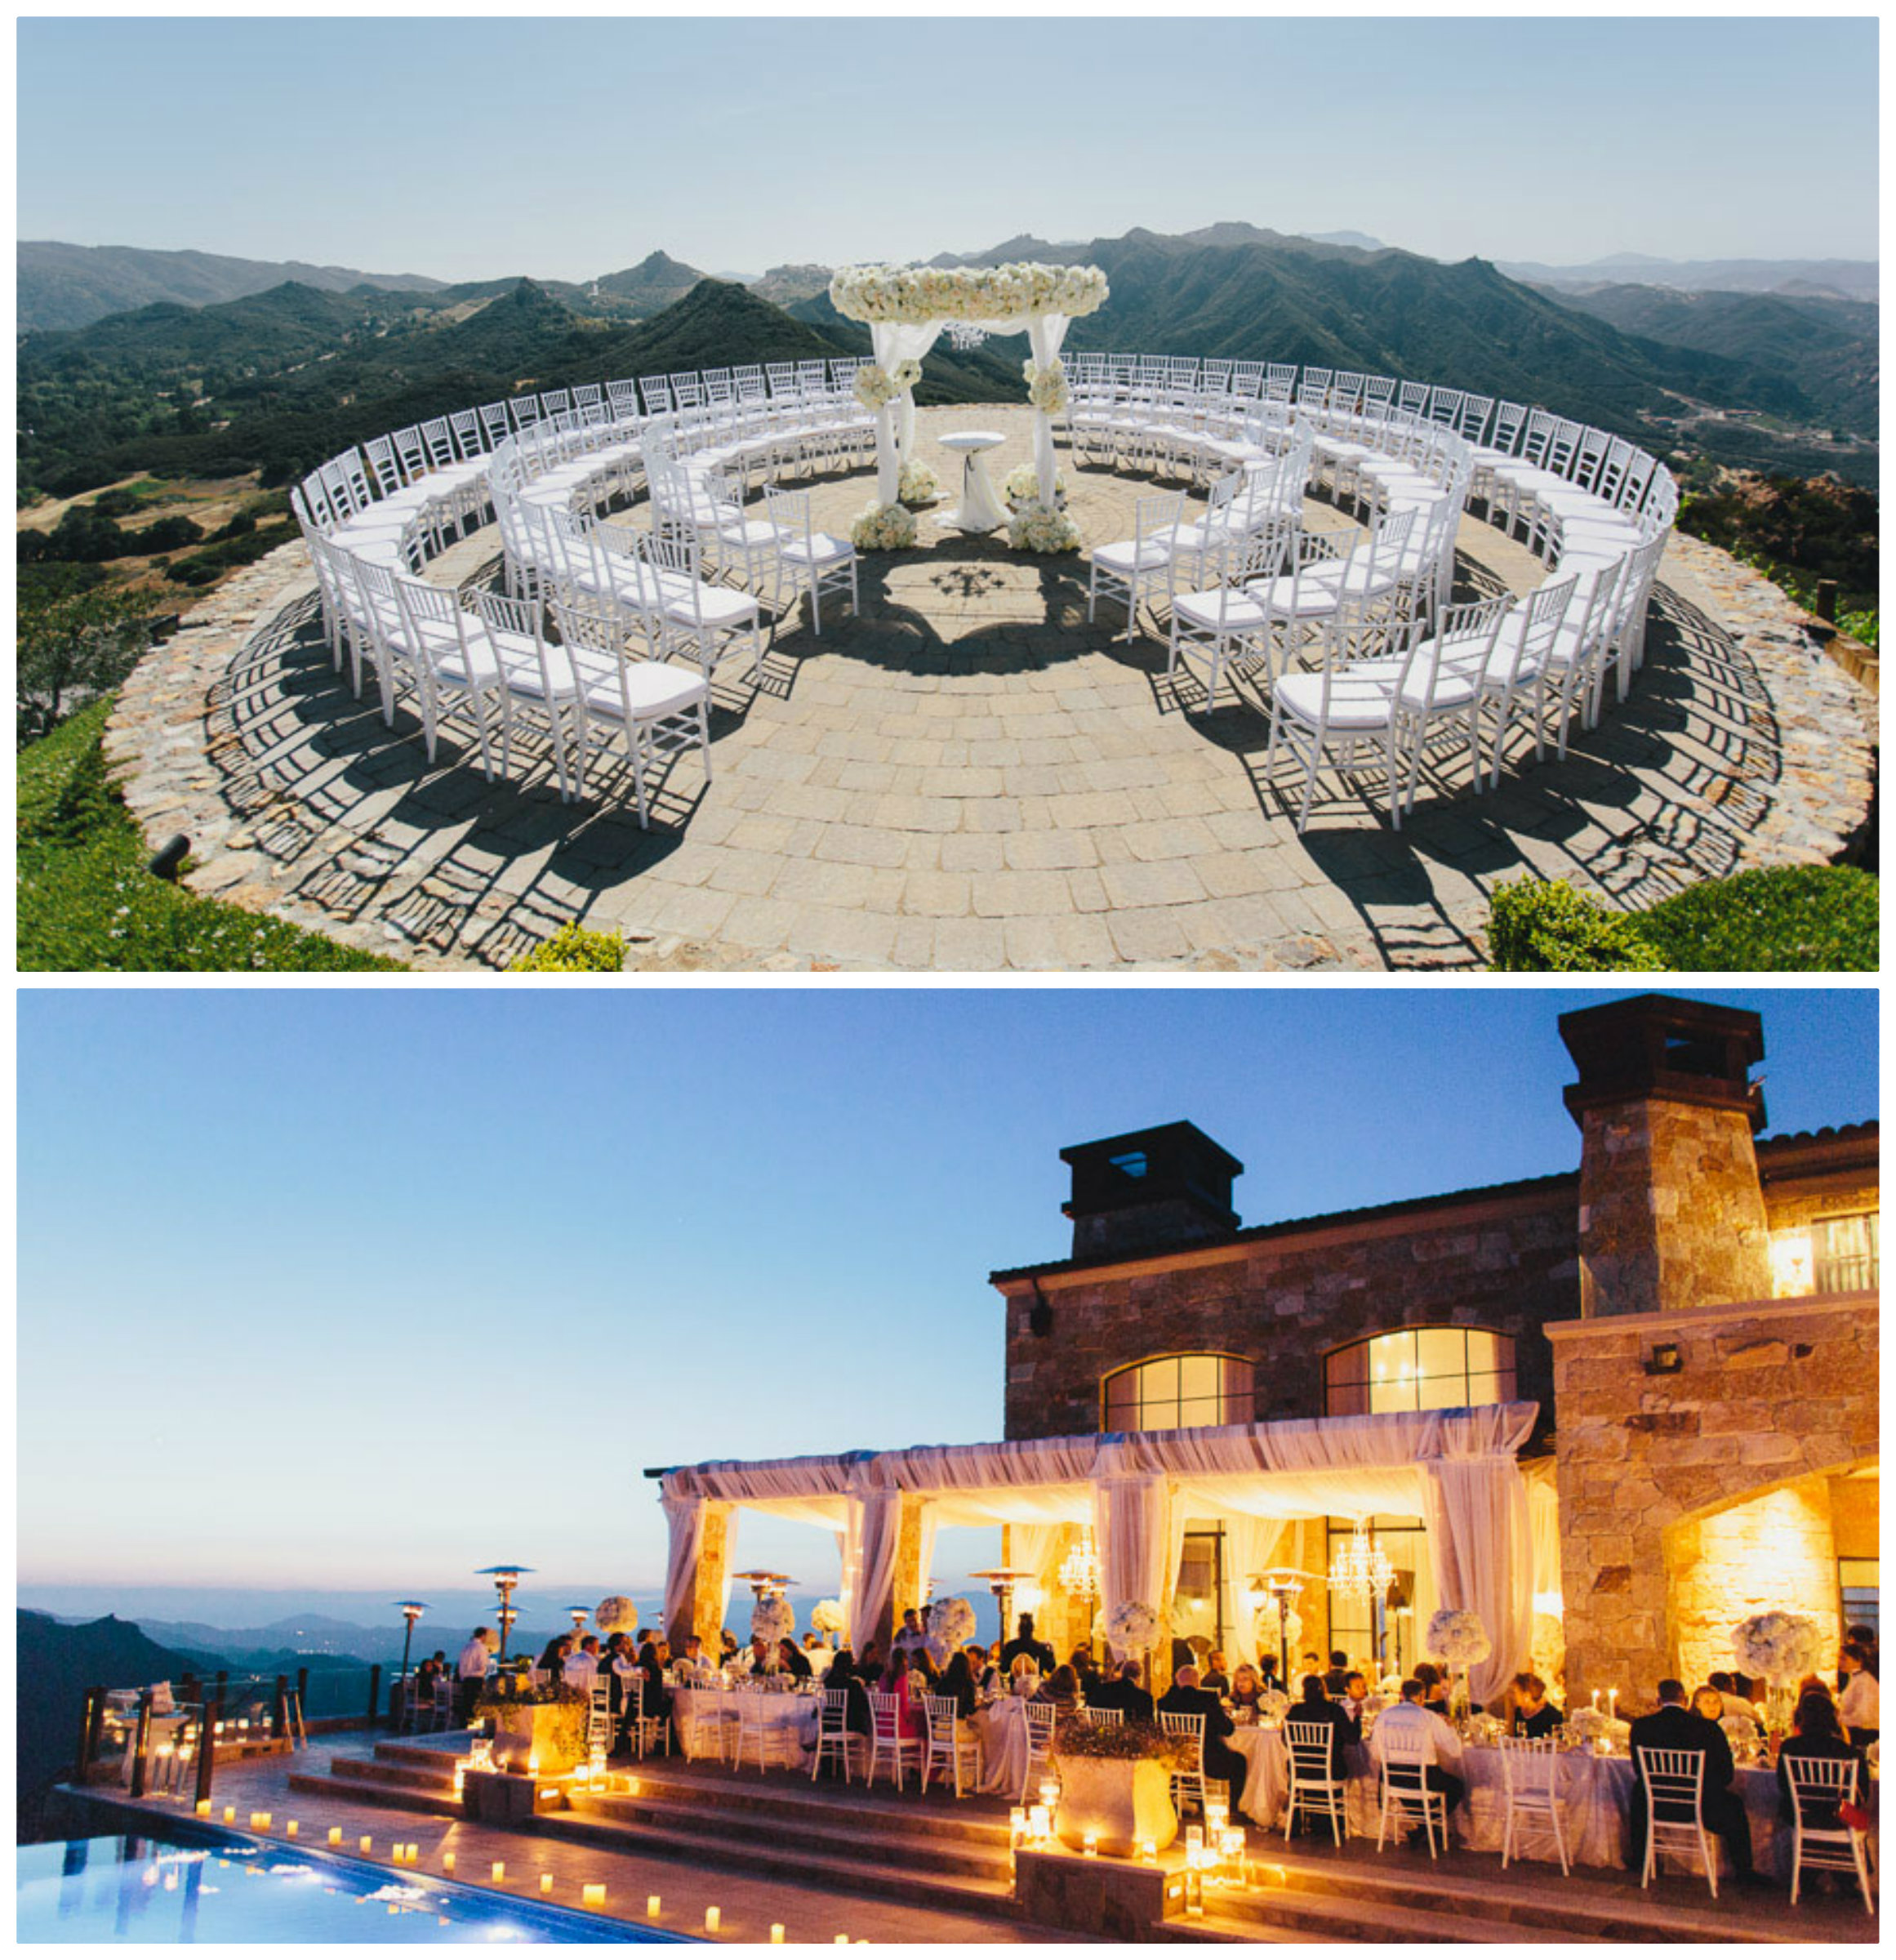 Fairytale venues socal for Malibu rocky oaks estate vineyards wedding cost